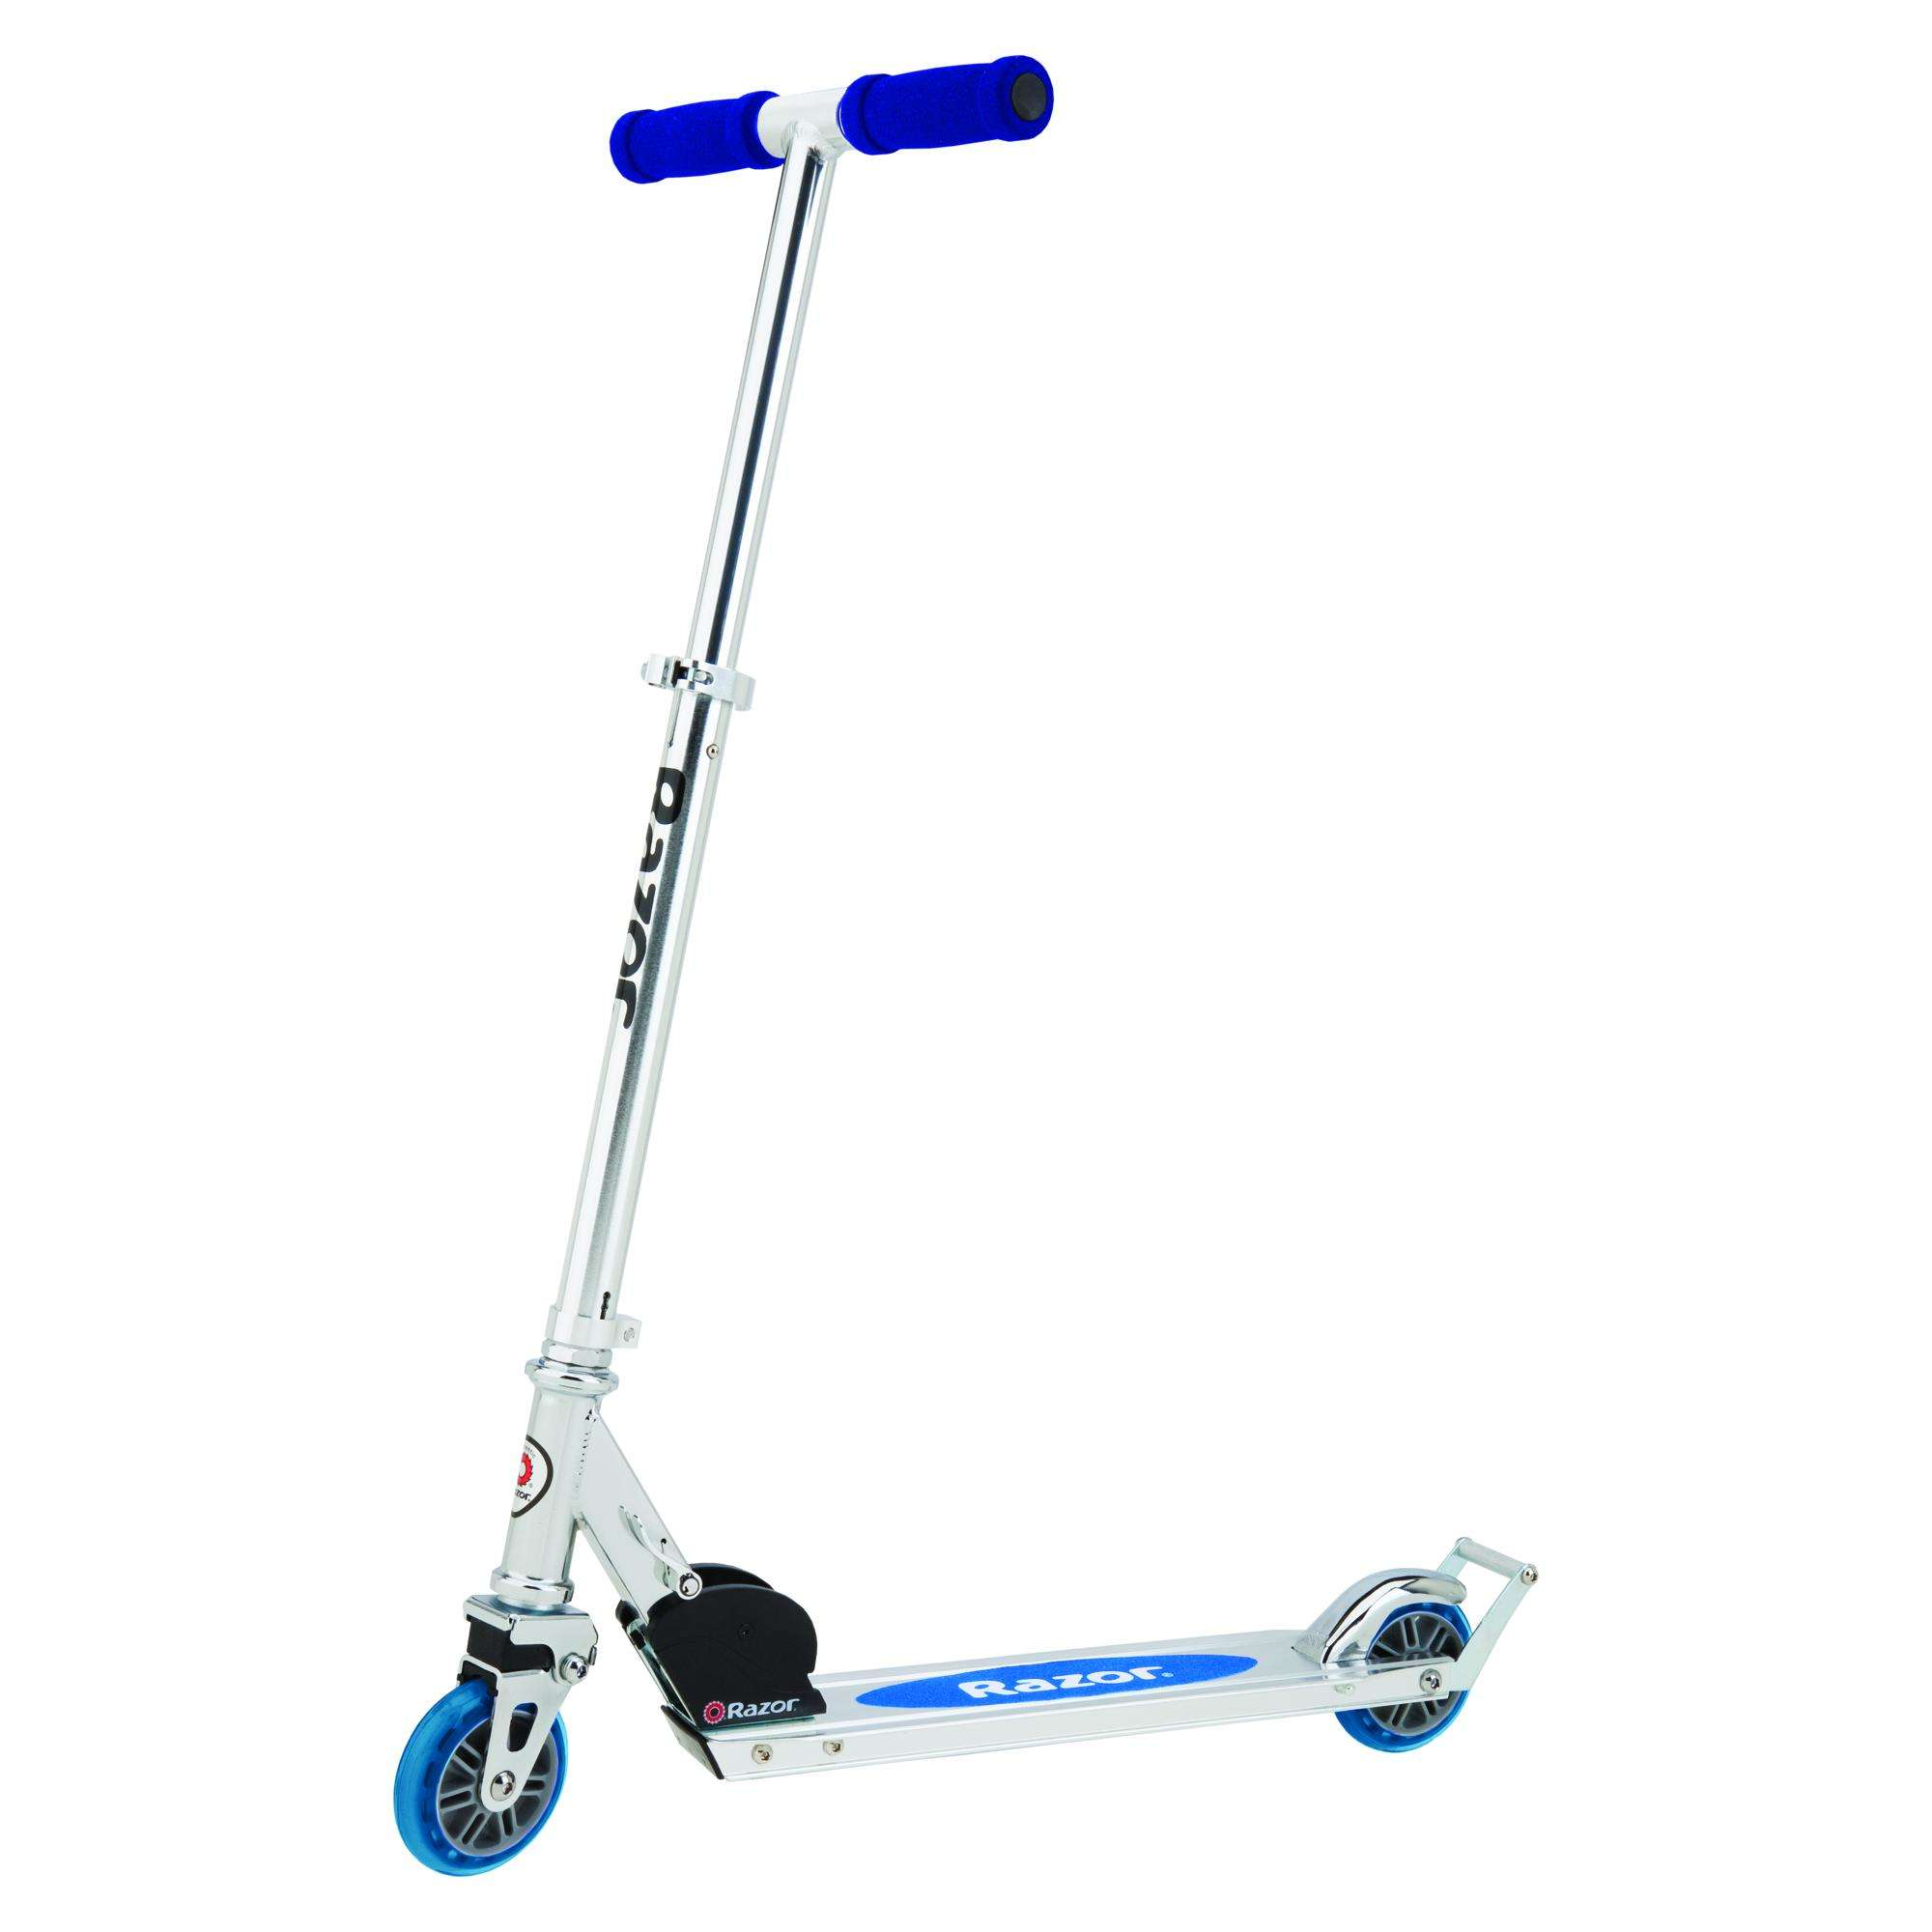 Razor Authentic A2 Kick Scooter